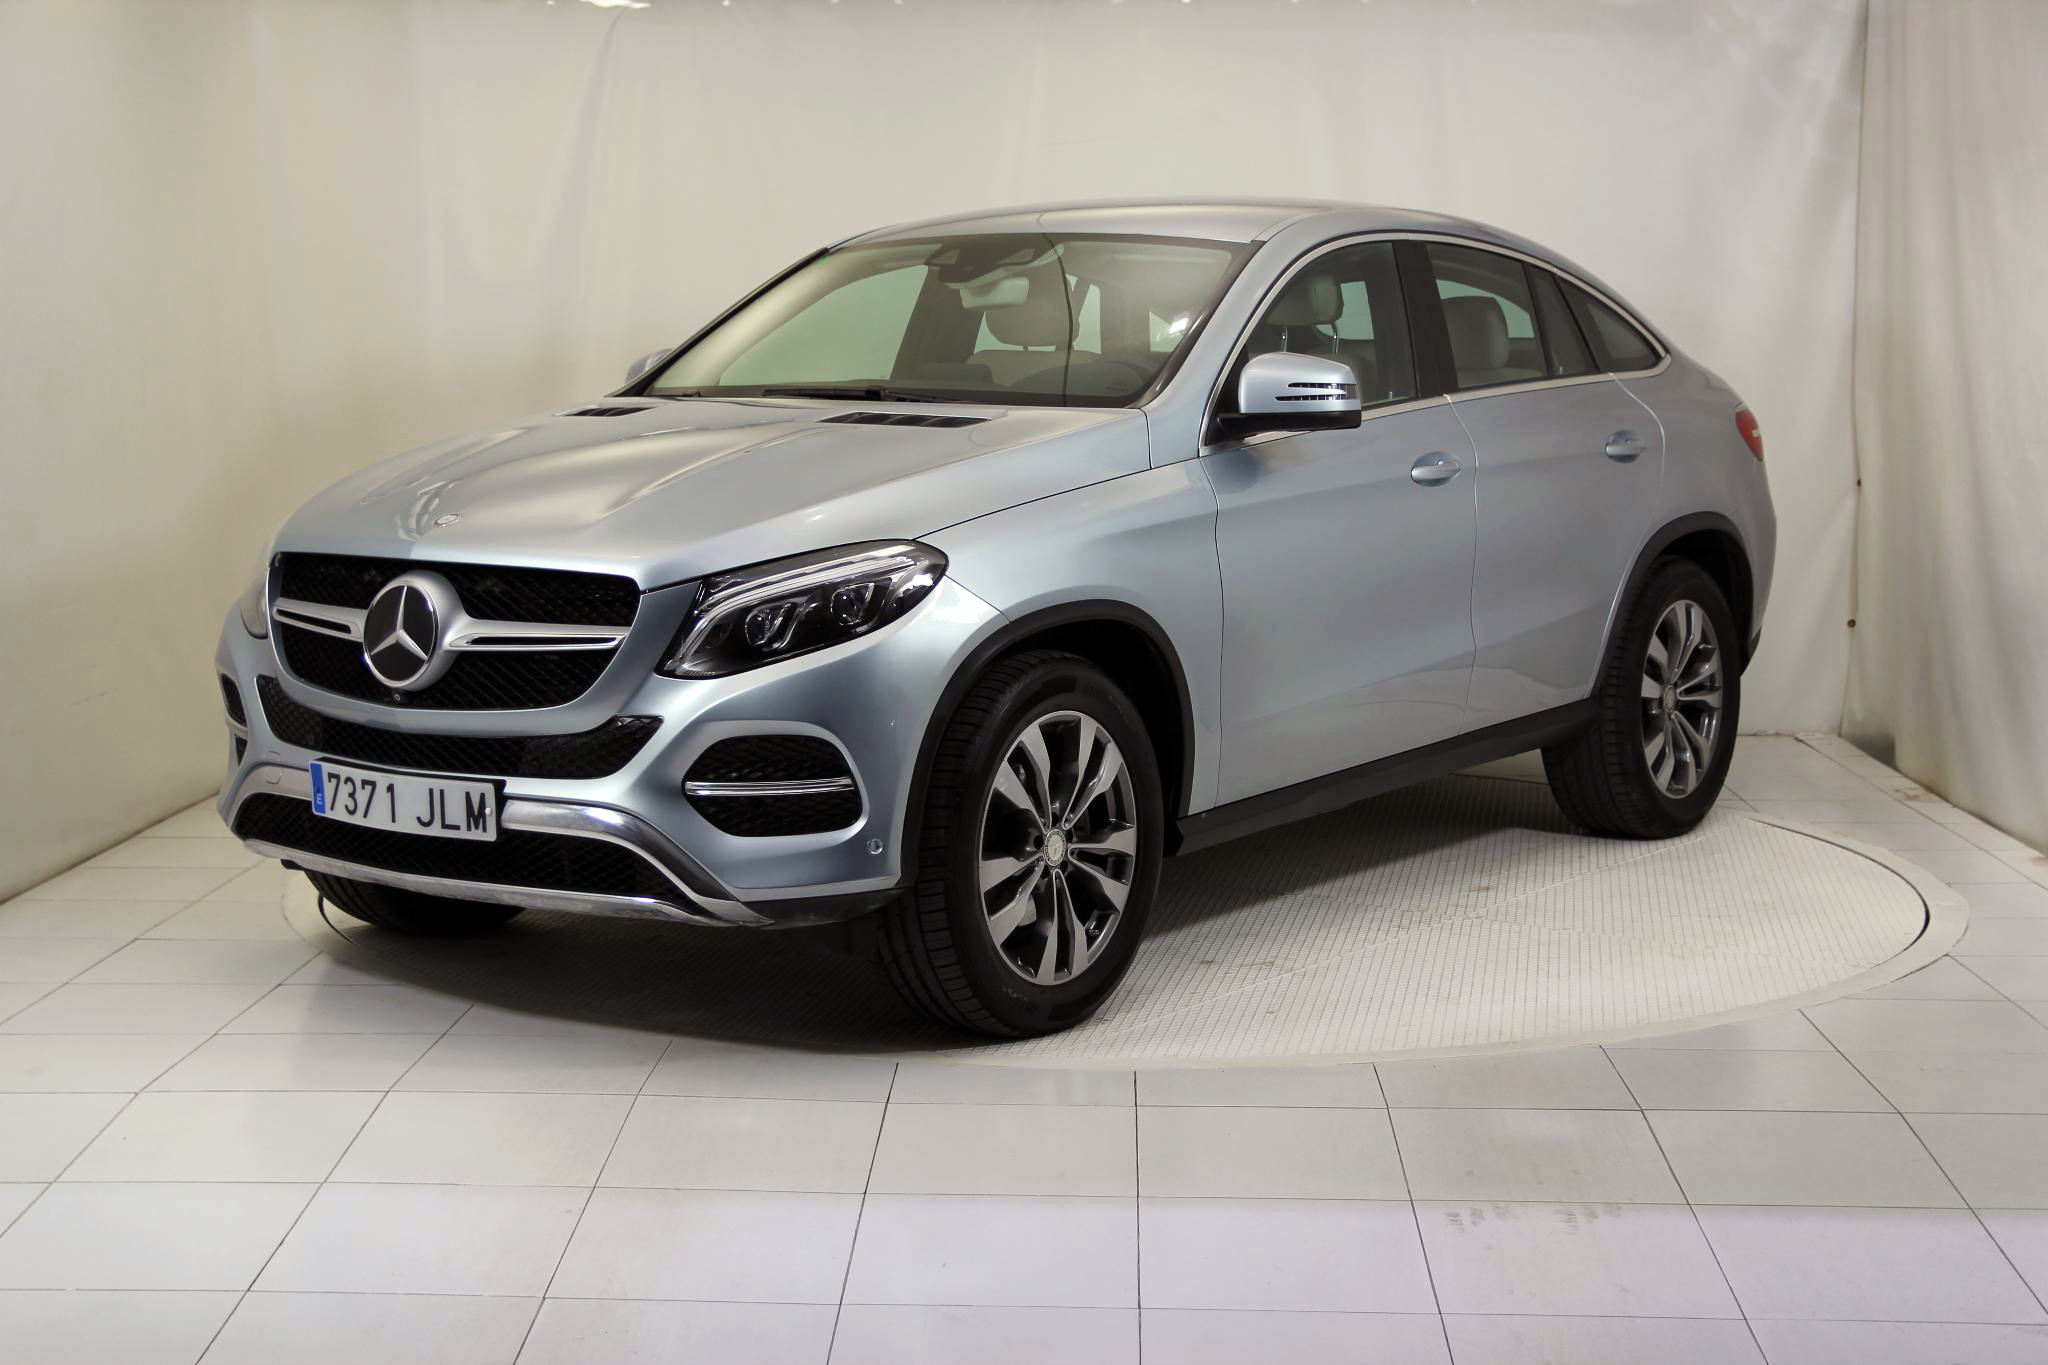 Mercedes-Benz Clase GLE GLE COUPE 350 D 4MATIC imagen 1